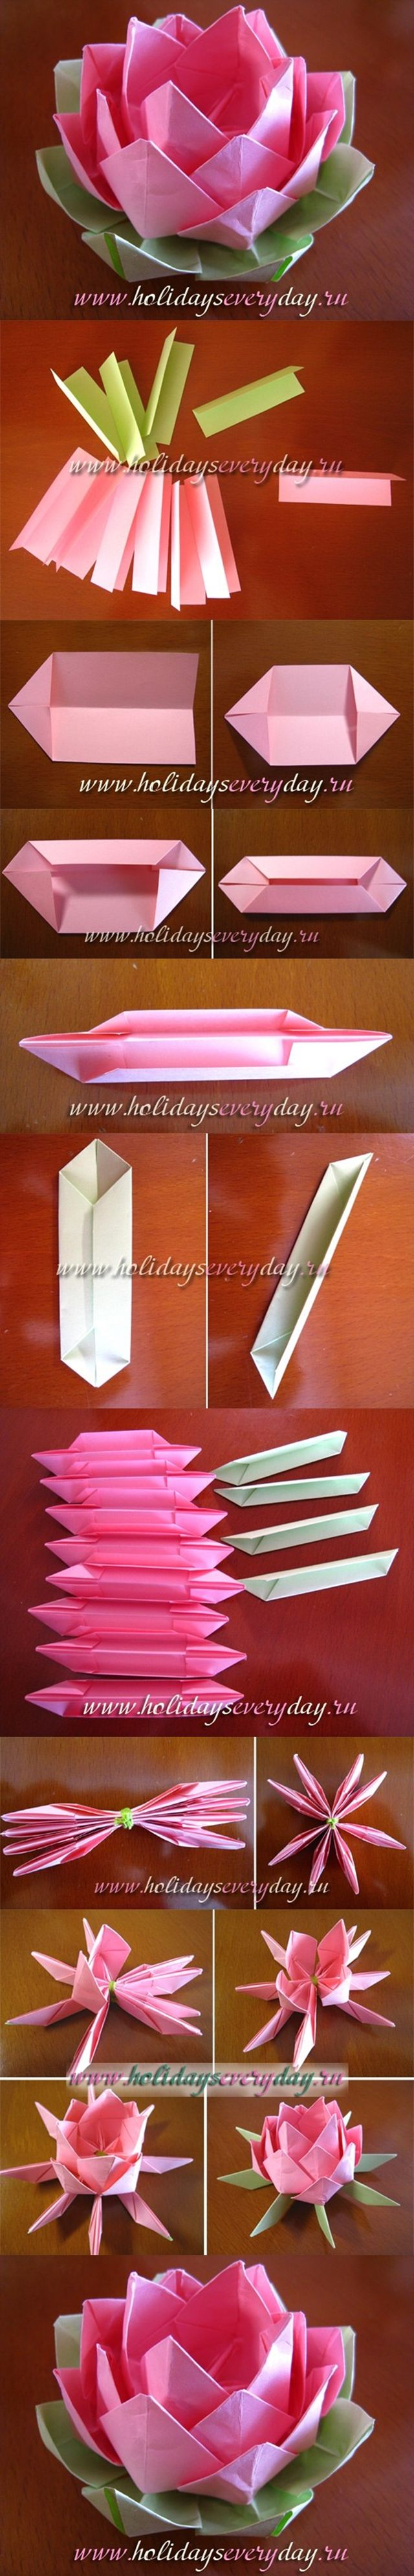 537 best diy paper flowers images on pinterest crepe paper how to diy origami paper lotus flower izmirmasajfo Image collections